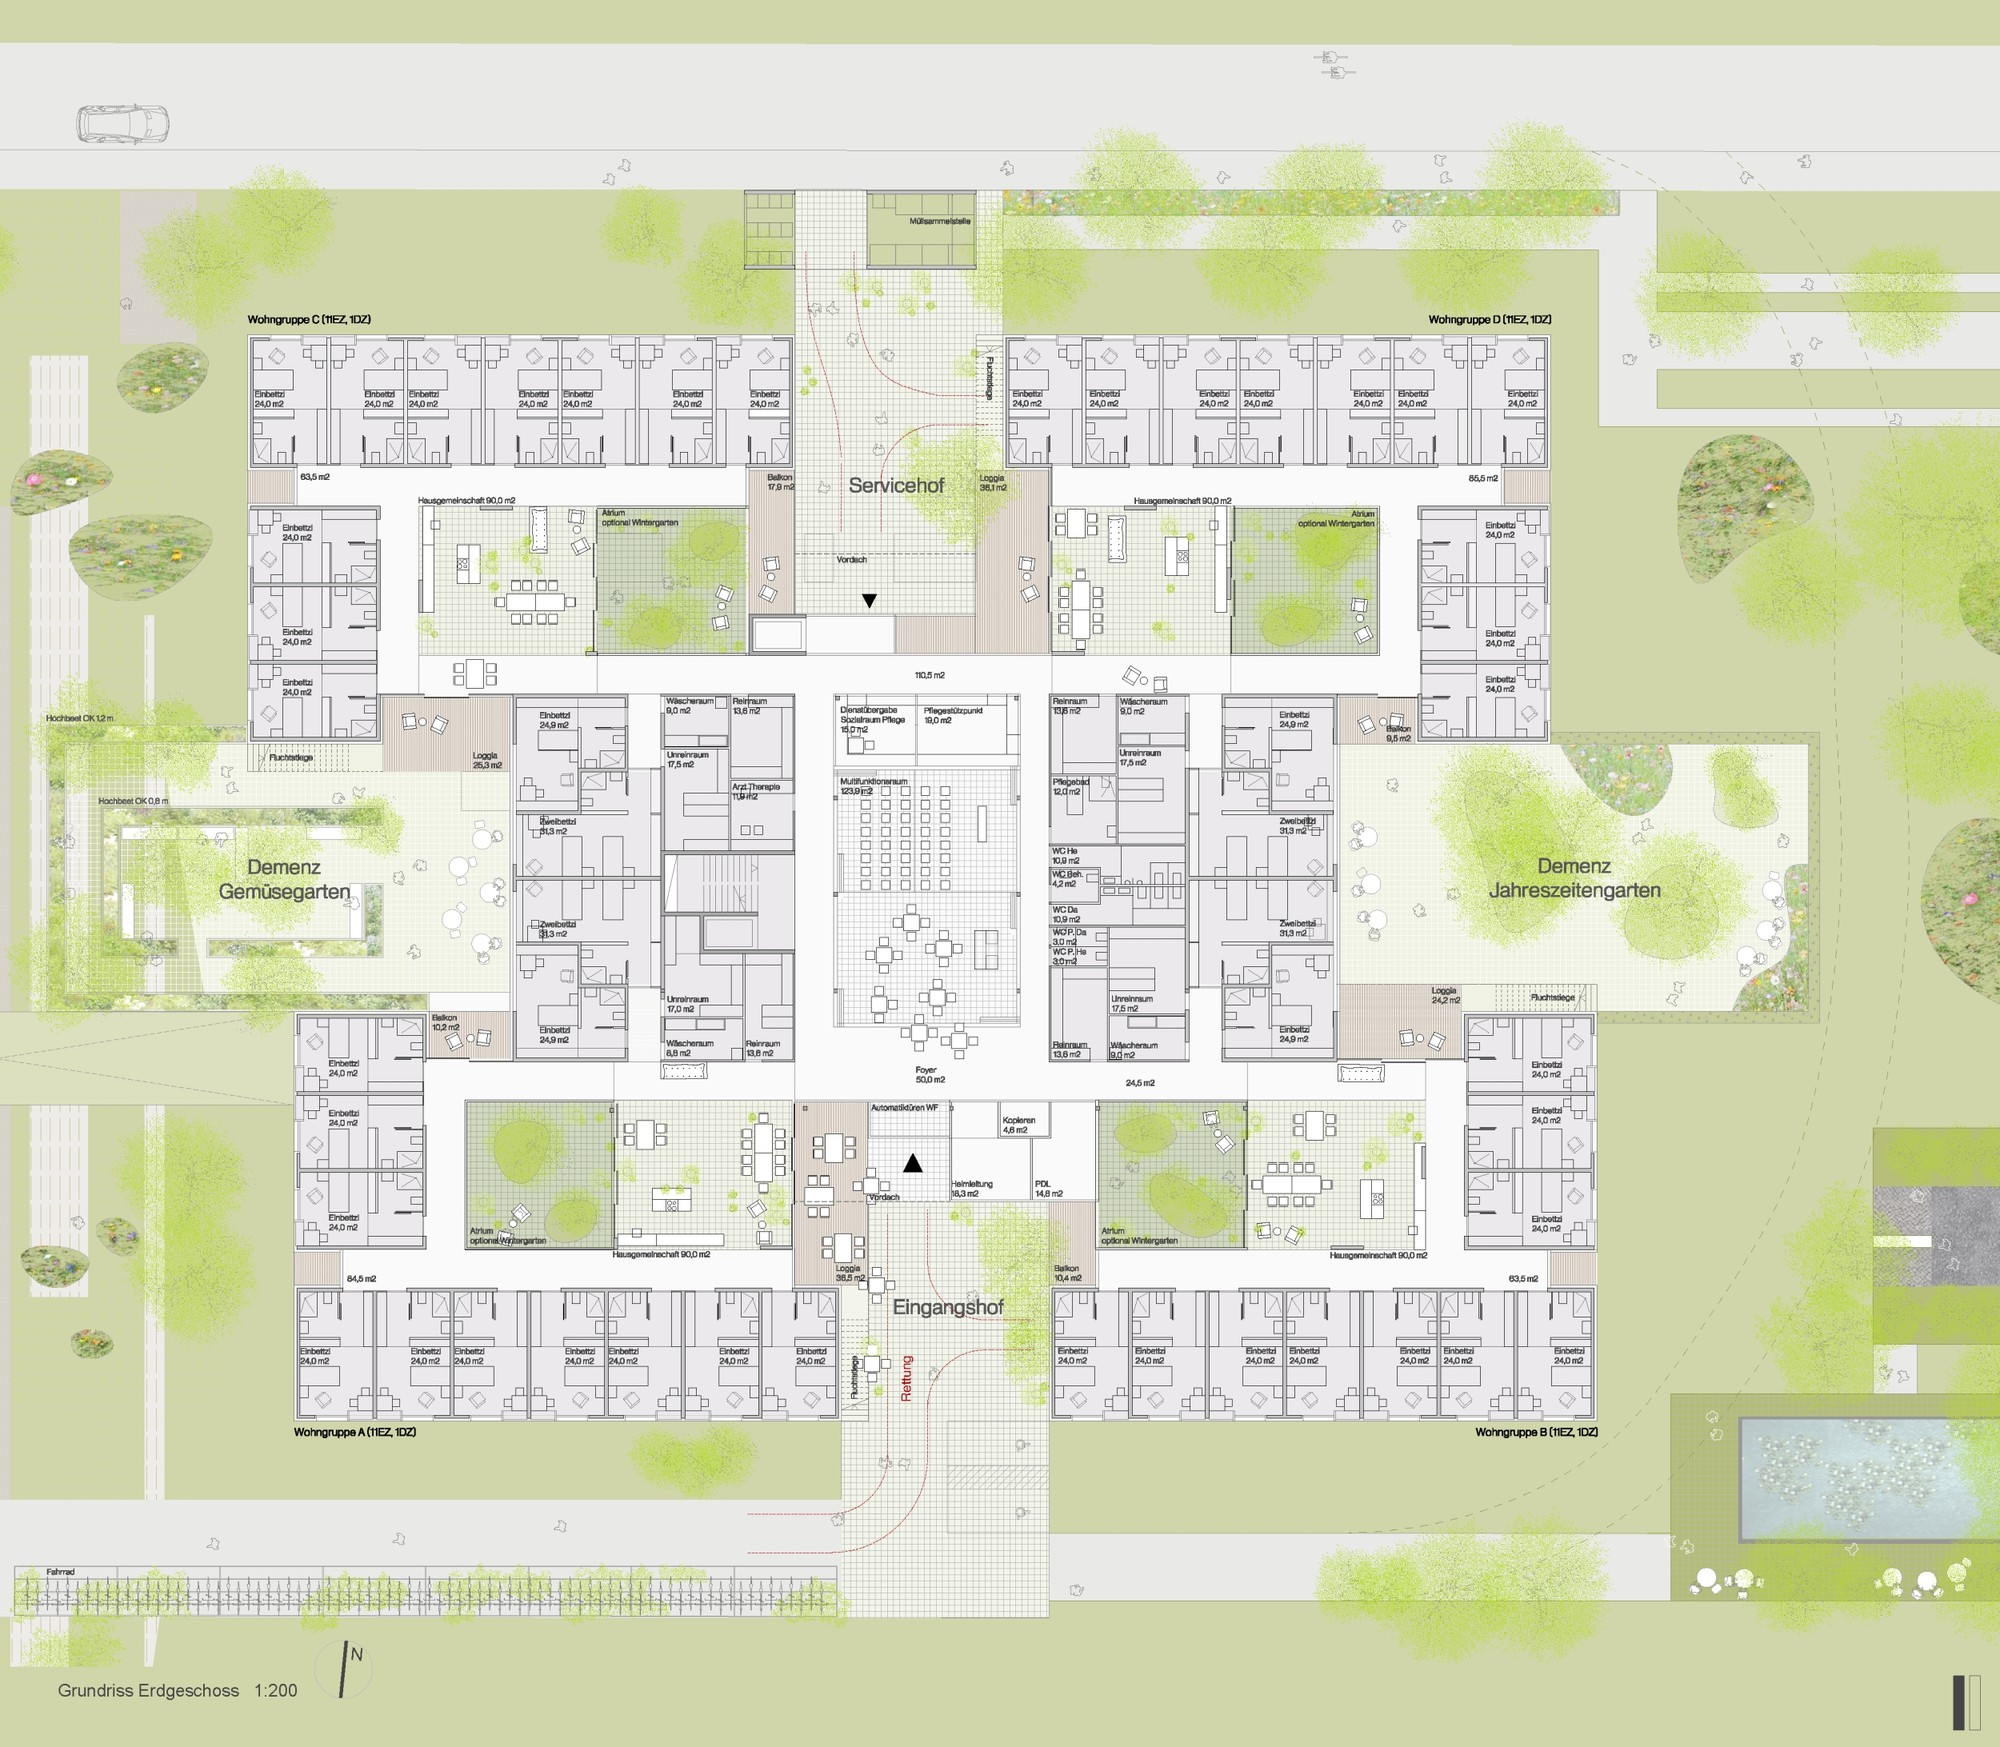 Peter rosegger nursing home dietger wissounig Rest house plan